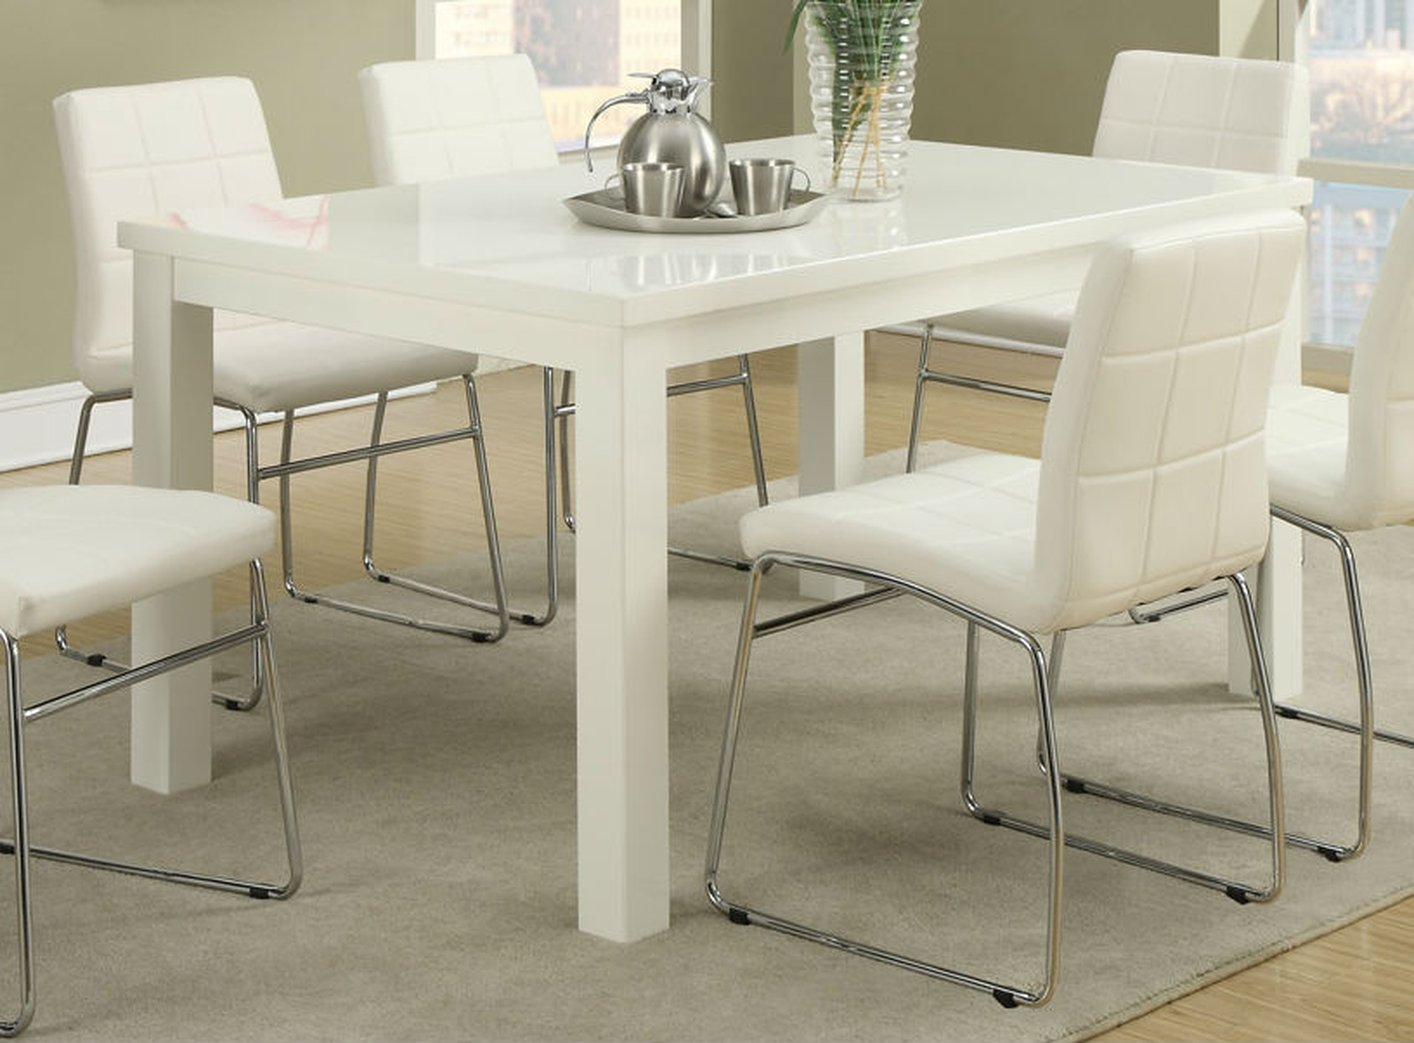 White Wood Dining Table StealASofa Furniture Outlet Los Angeles CA - Kitchen table los angeles